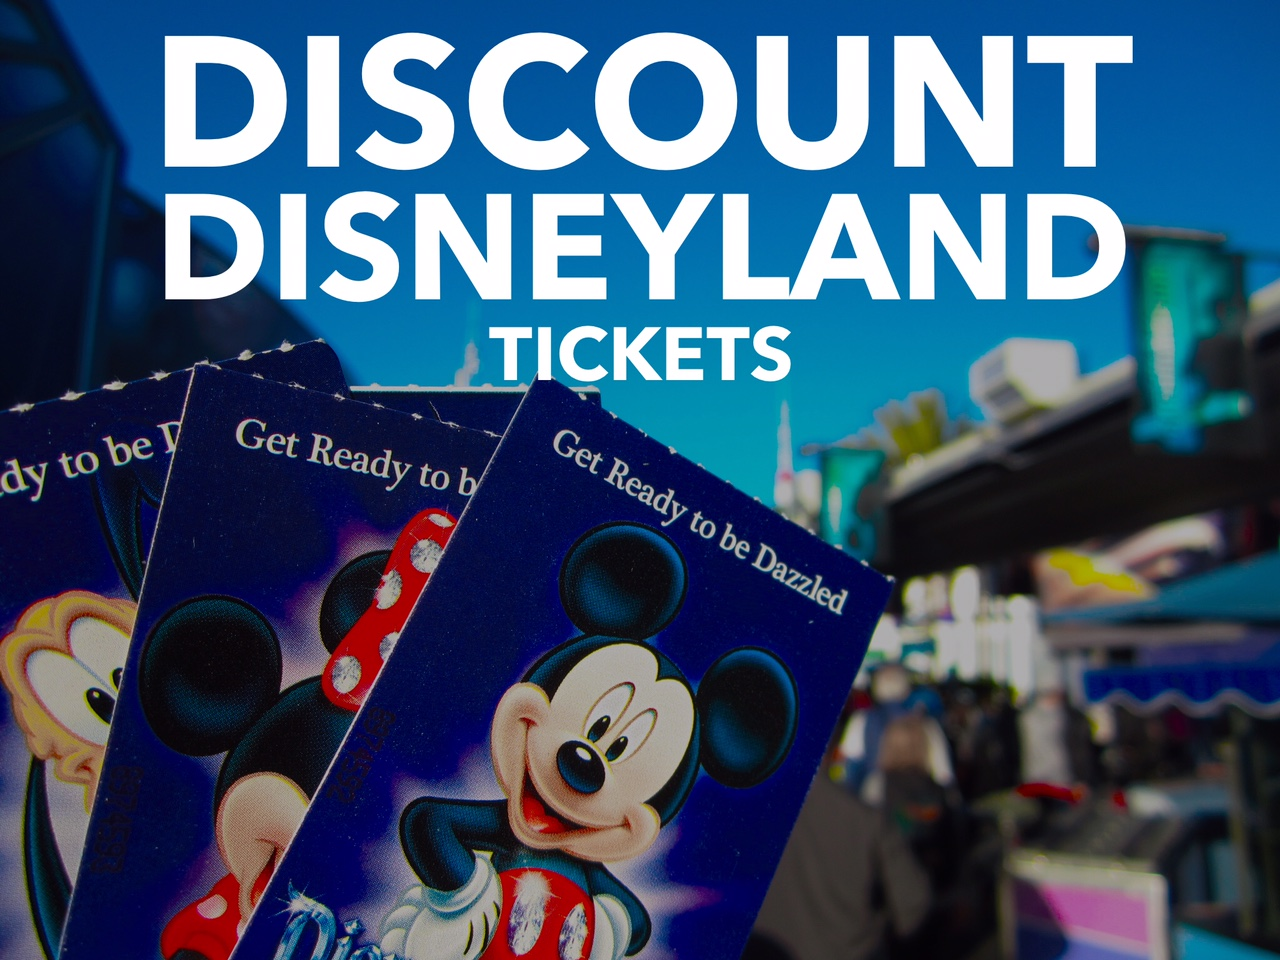 Disneyland admission discount coupons